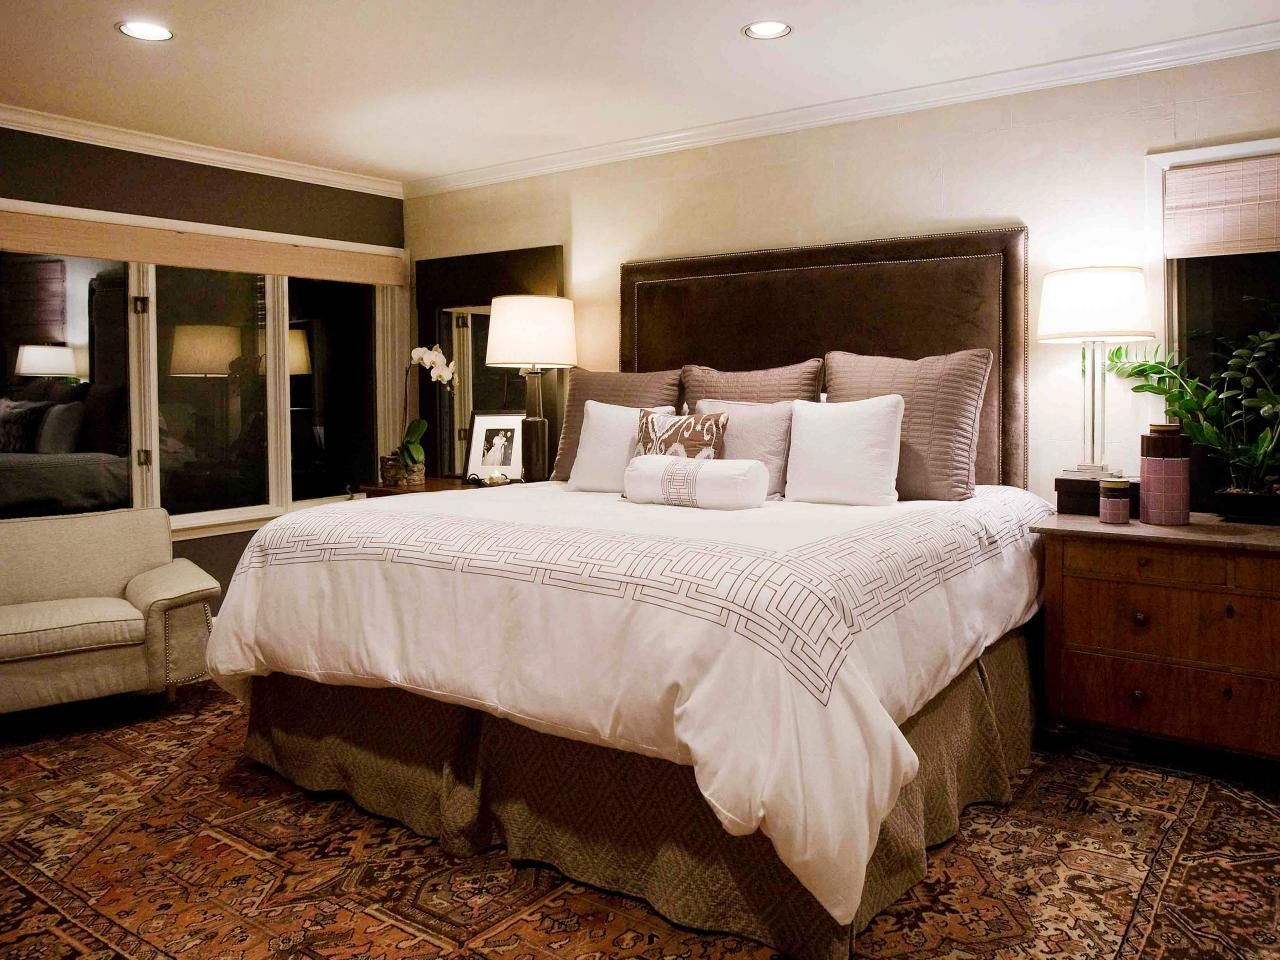 This master bedroom has neutral walls and an upholstered brown